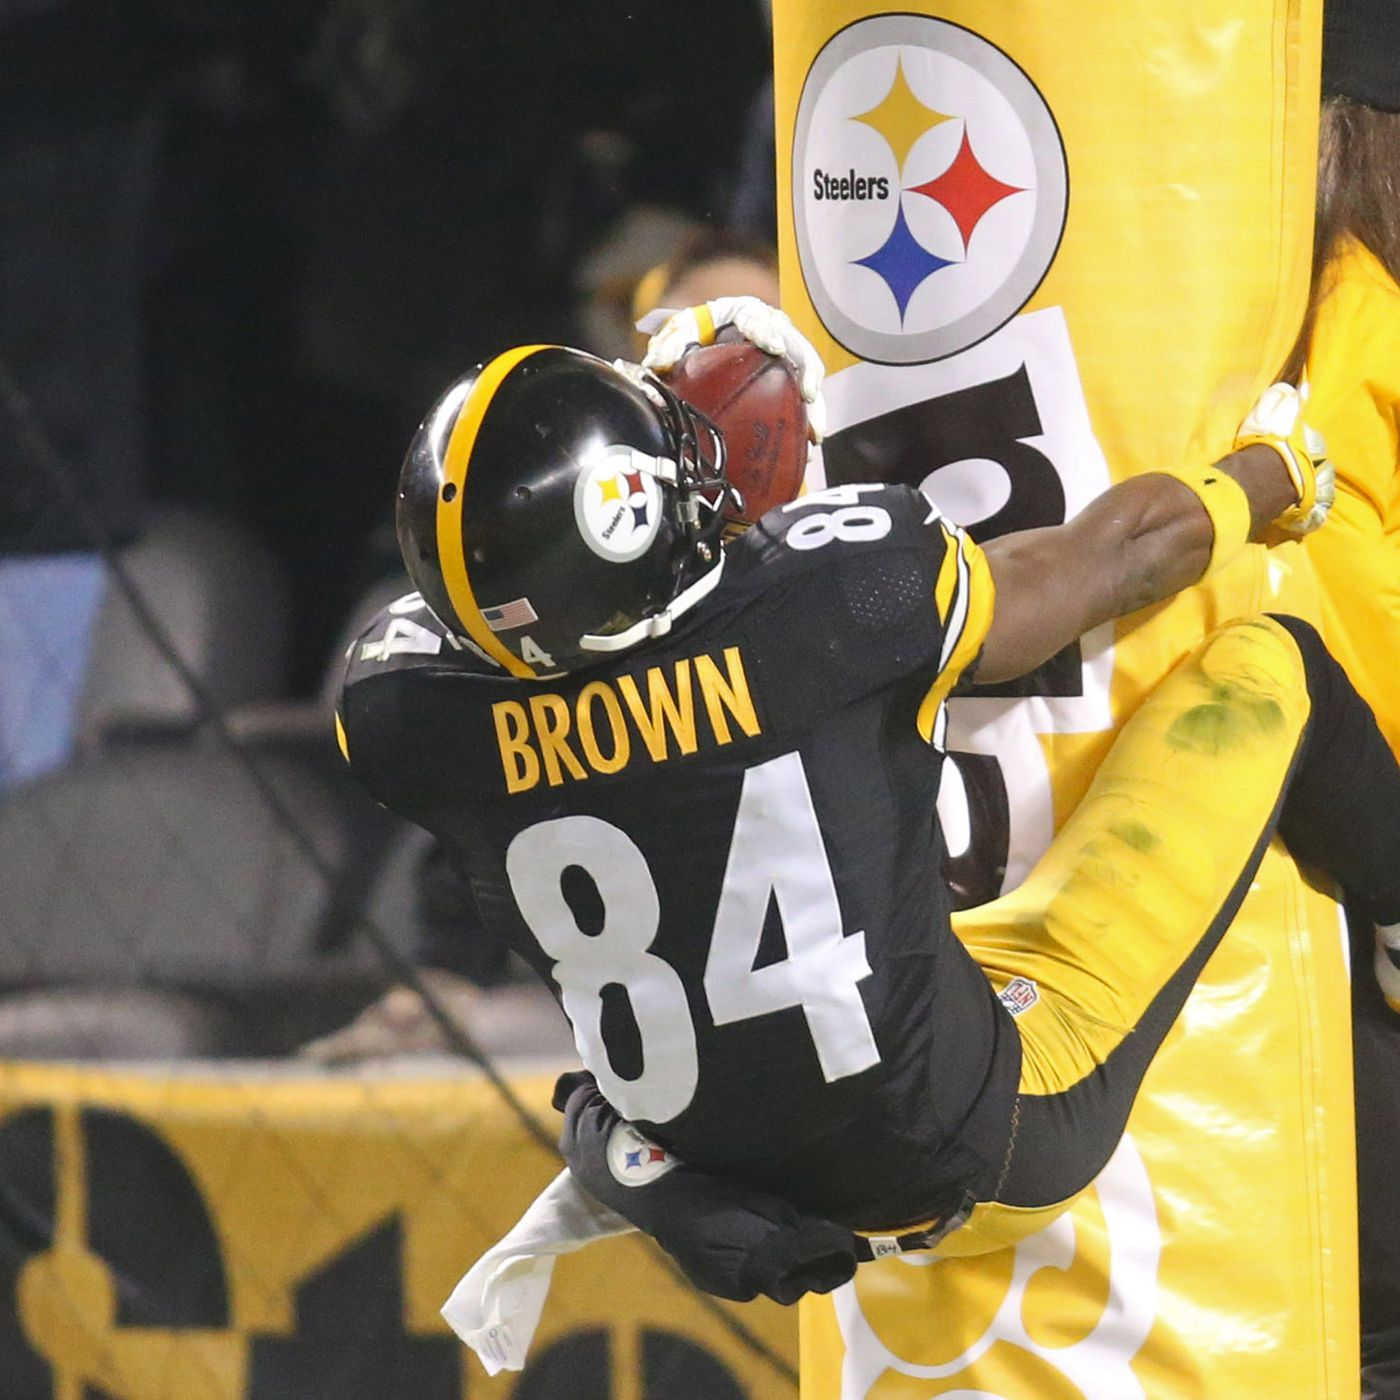 737c739209f Steelers vs. Colts 2016 Week 12  Thanksgiving Game time